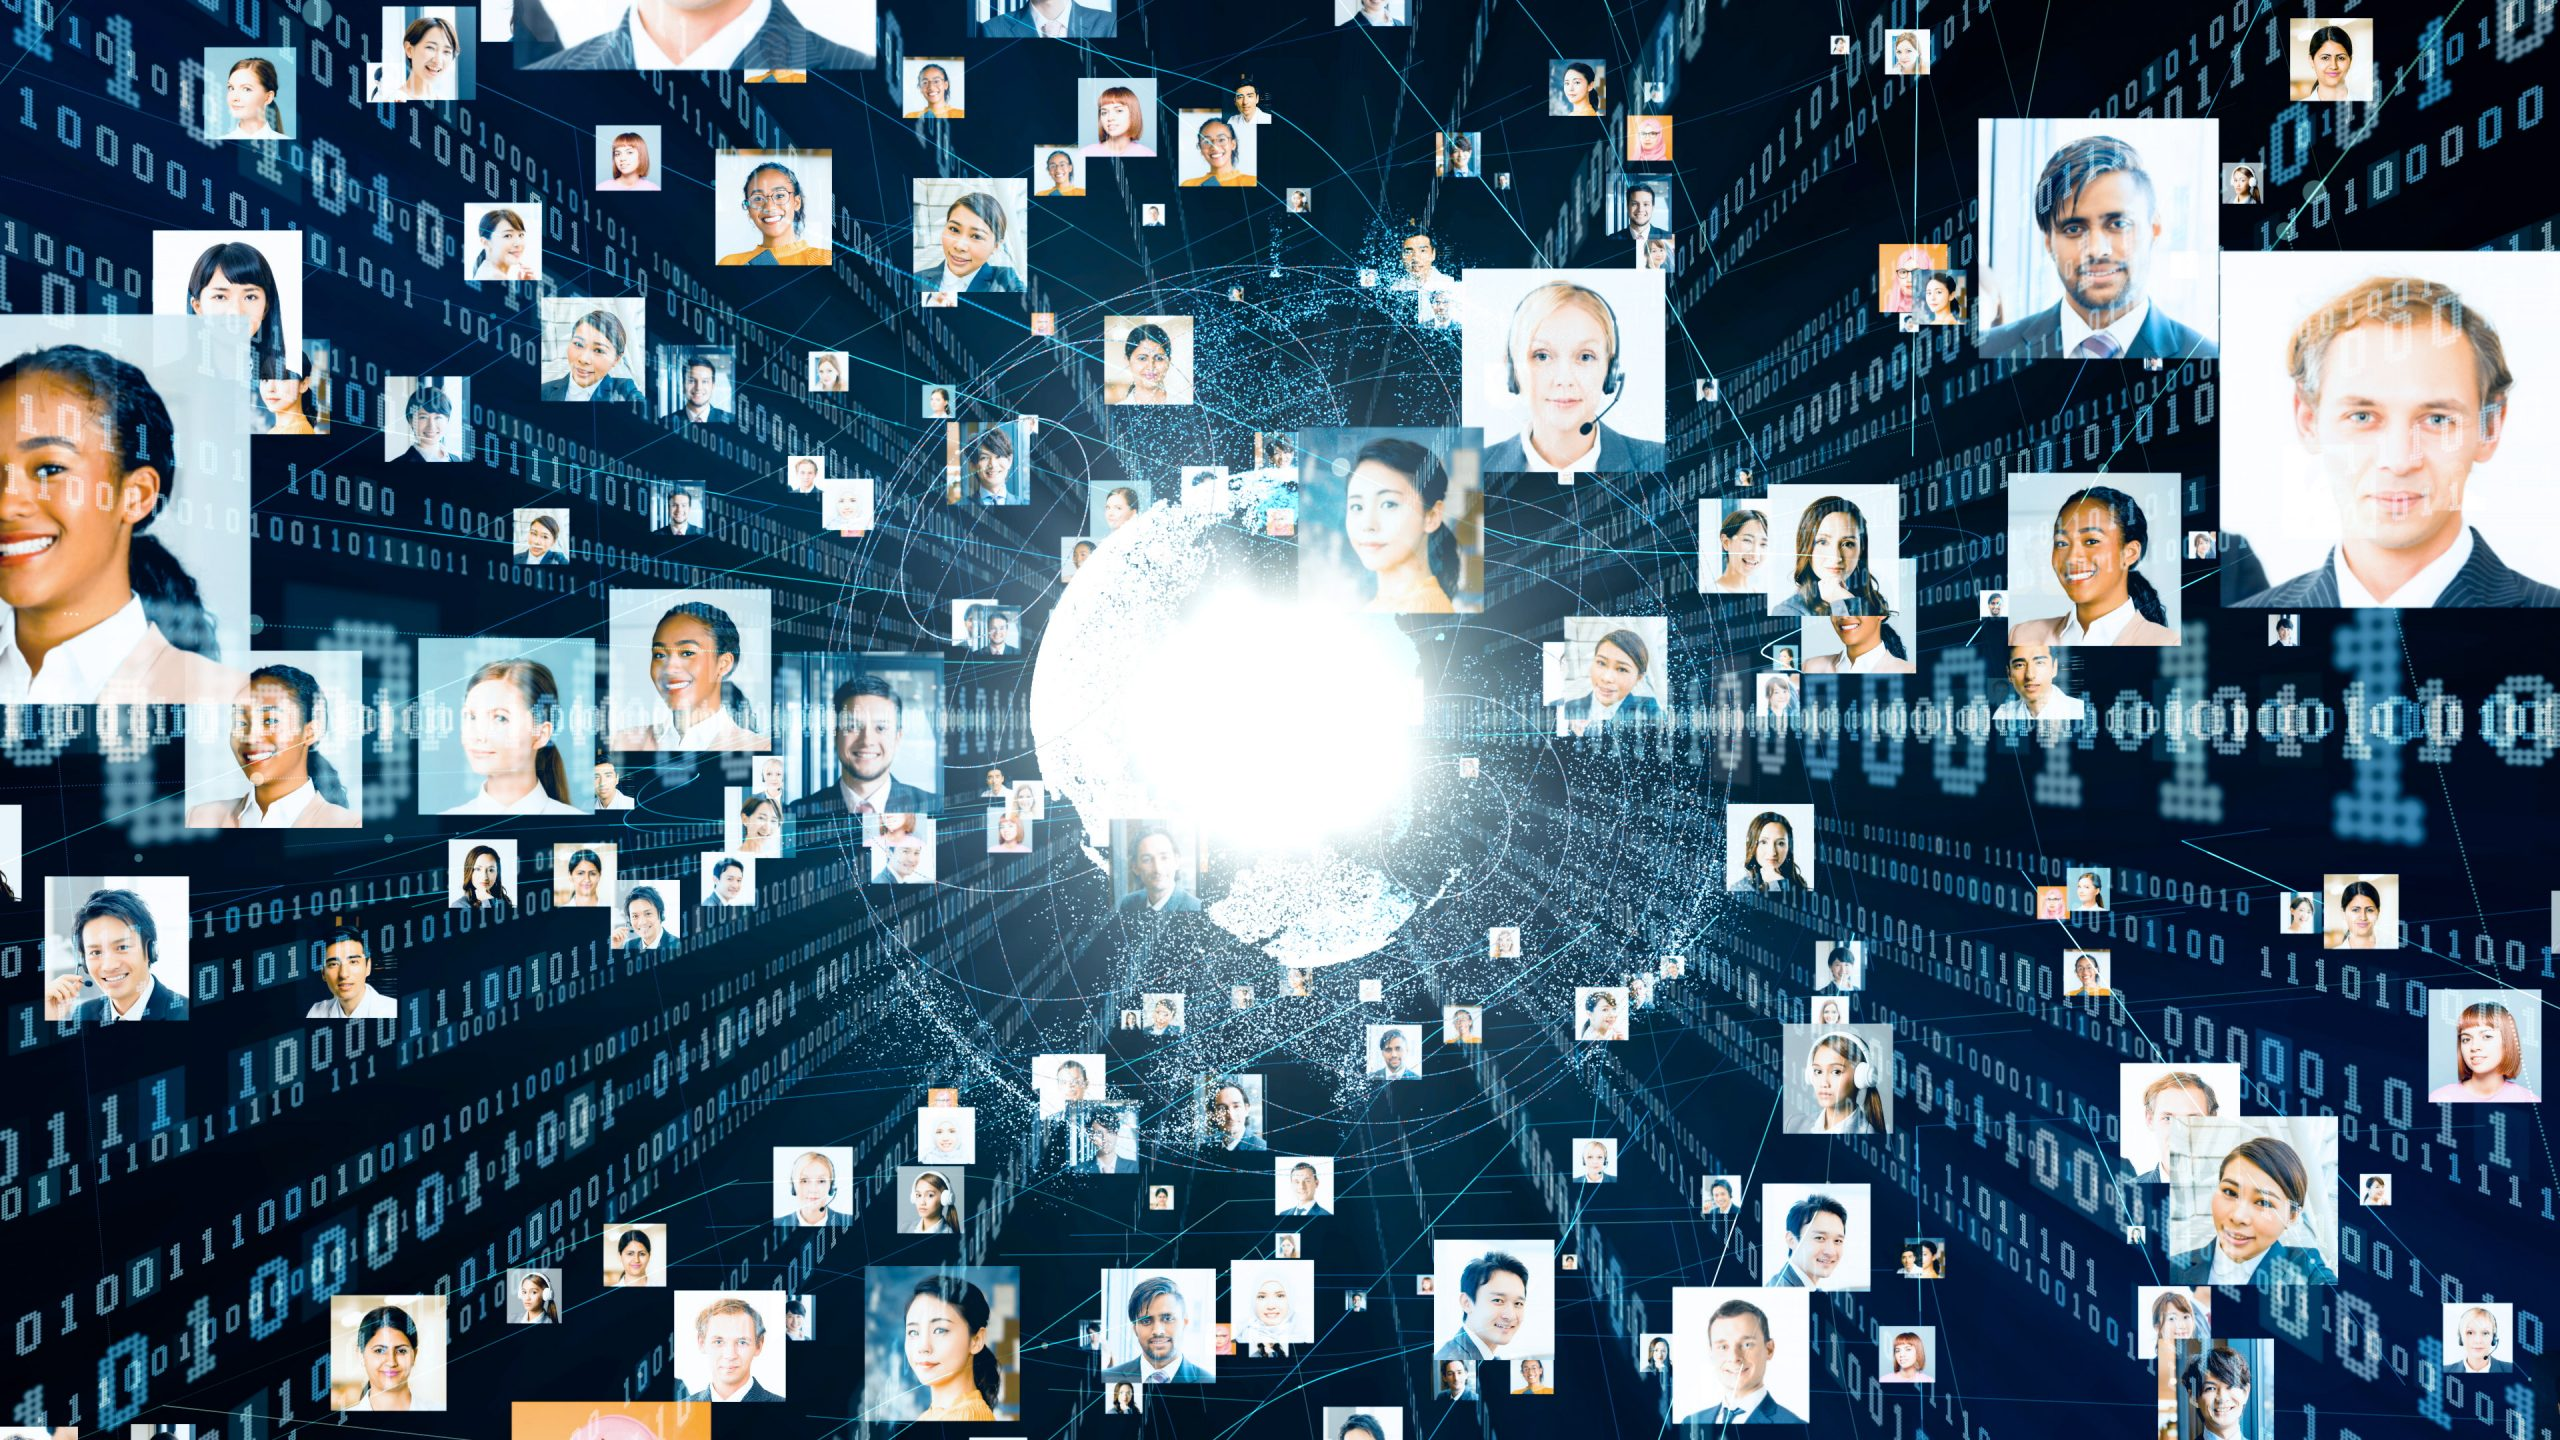 Many pictures of faces connected together in a digital network.